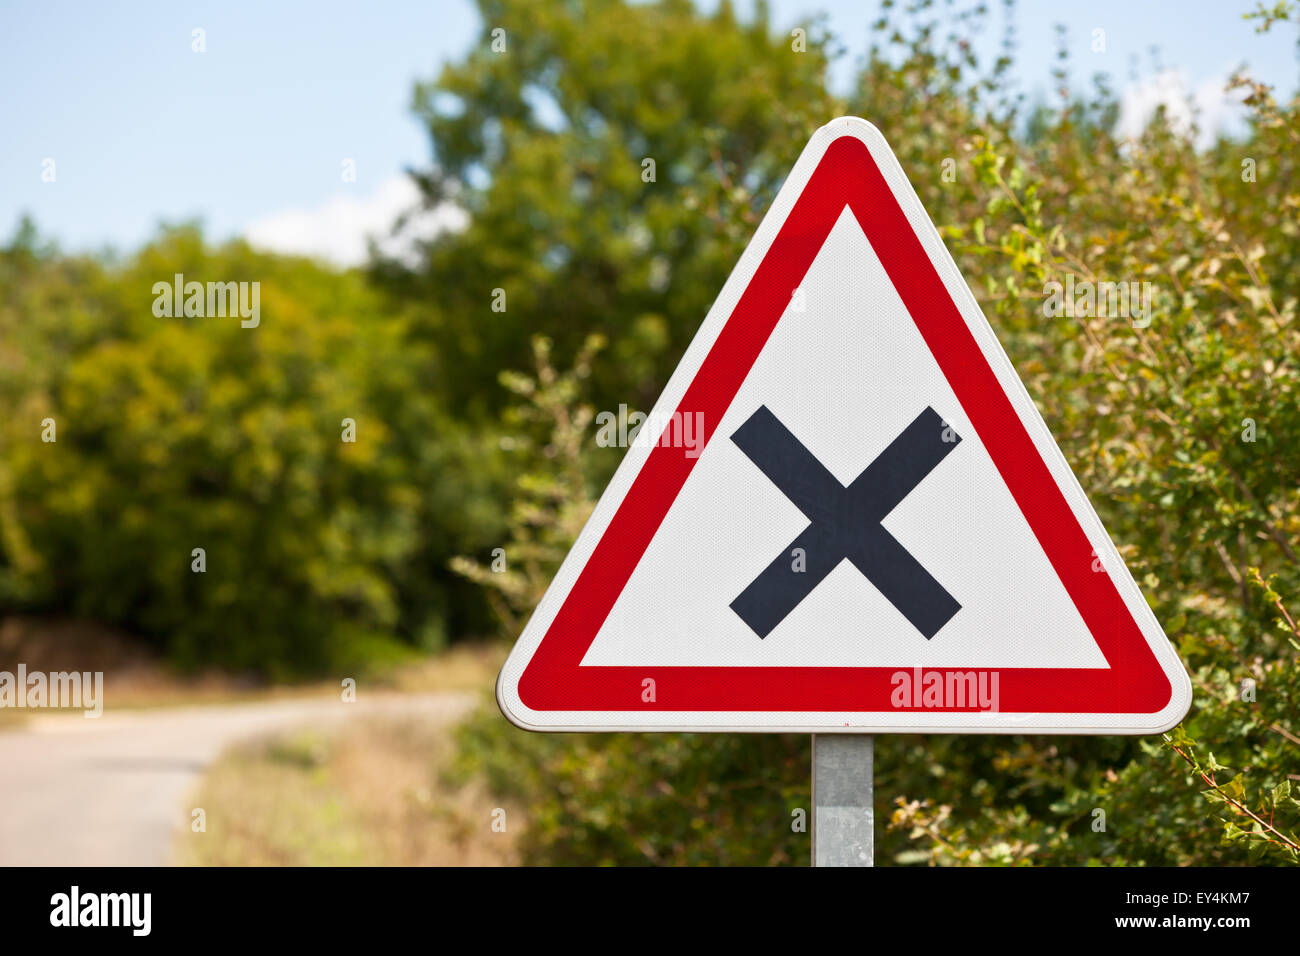 Triangular crossroads road sign on a country road junction - Stock Image